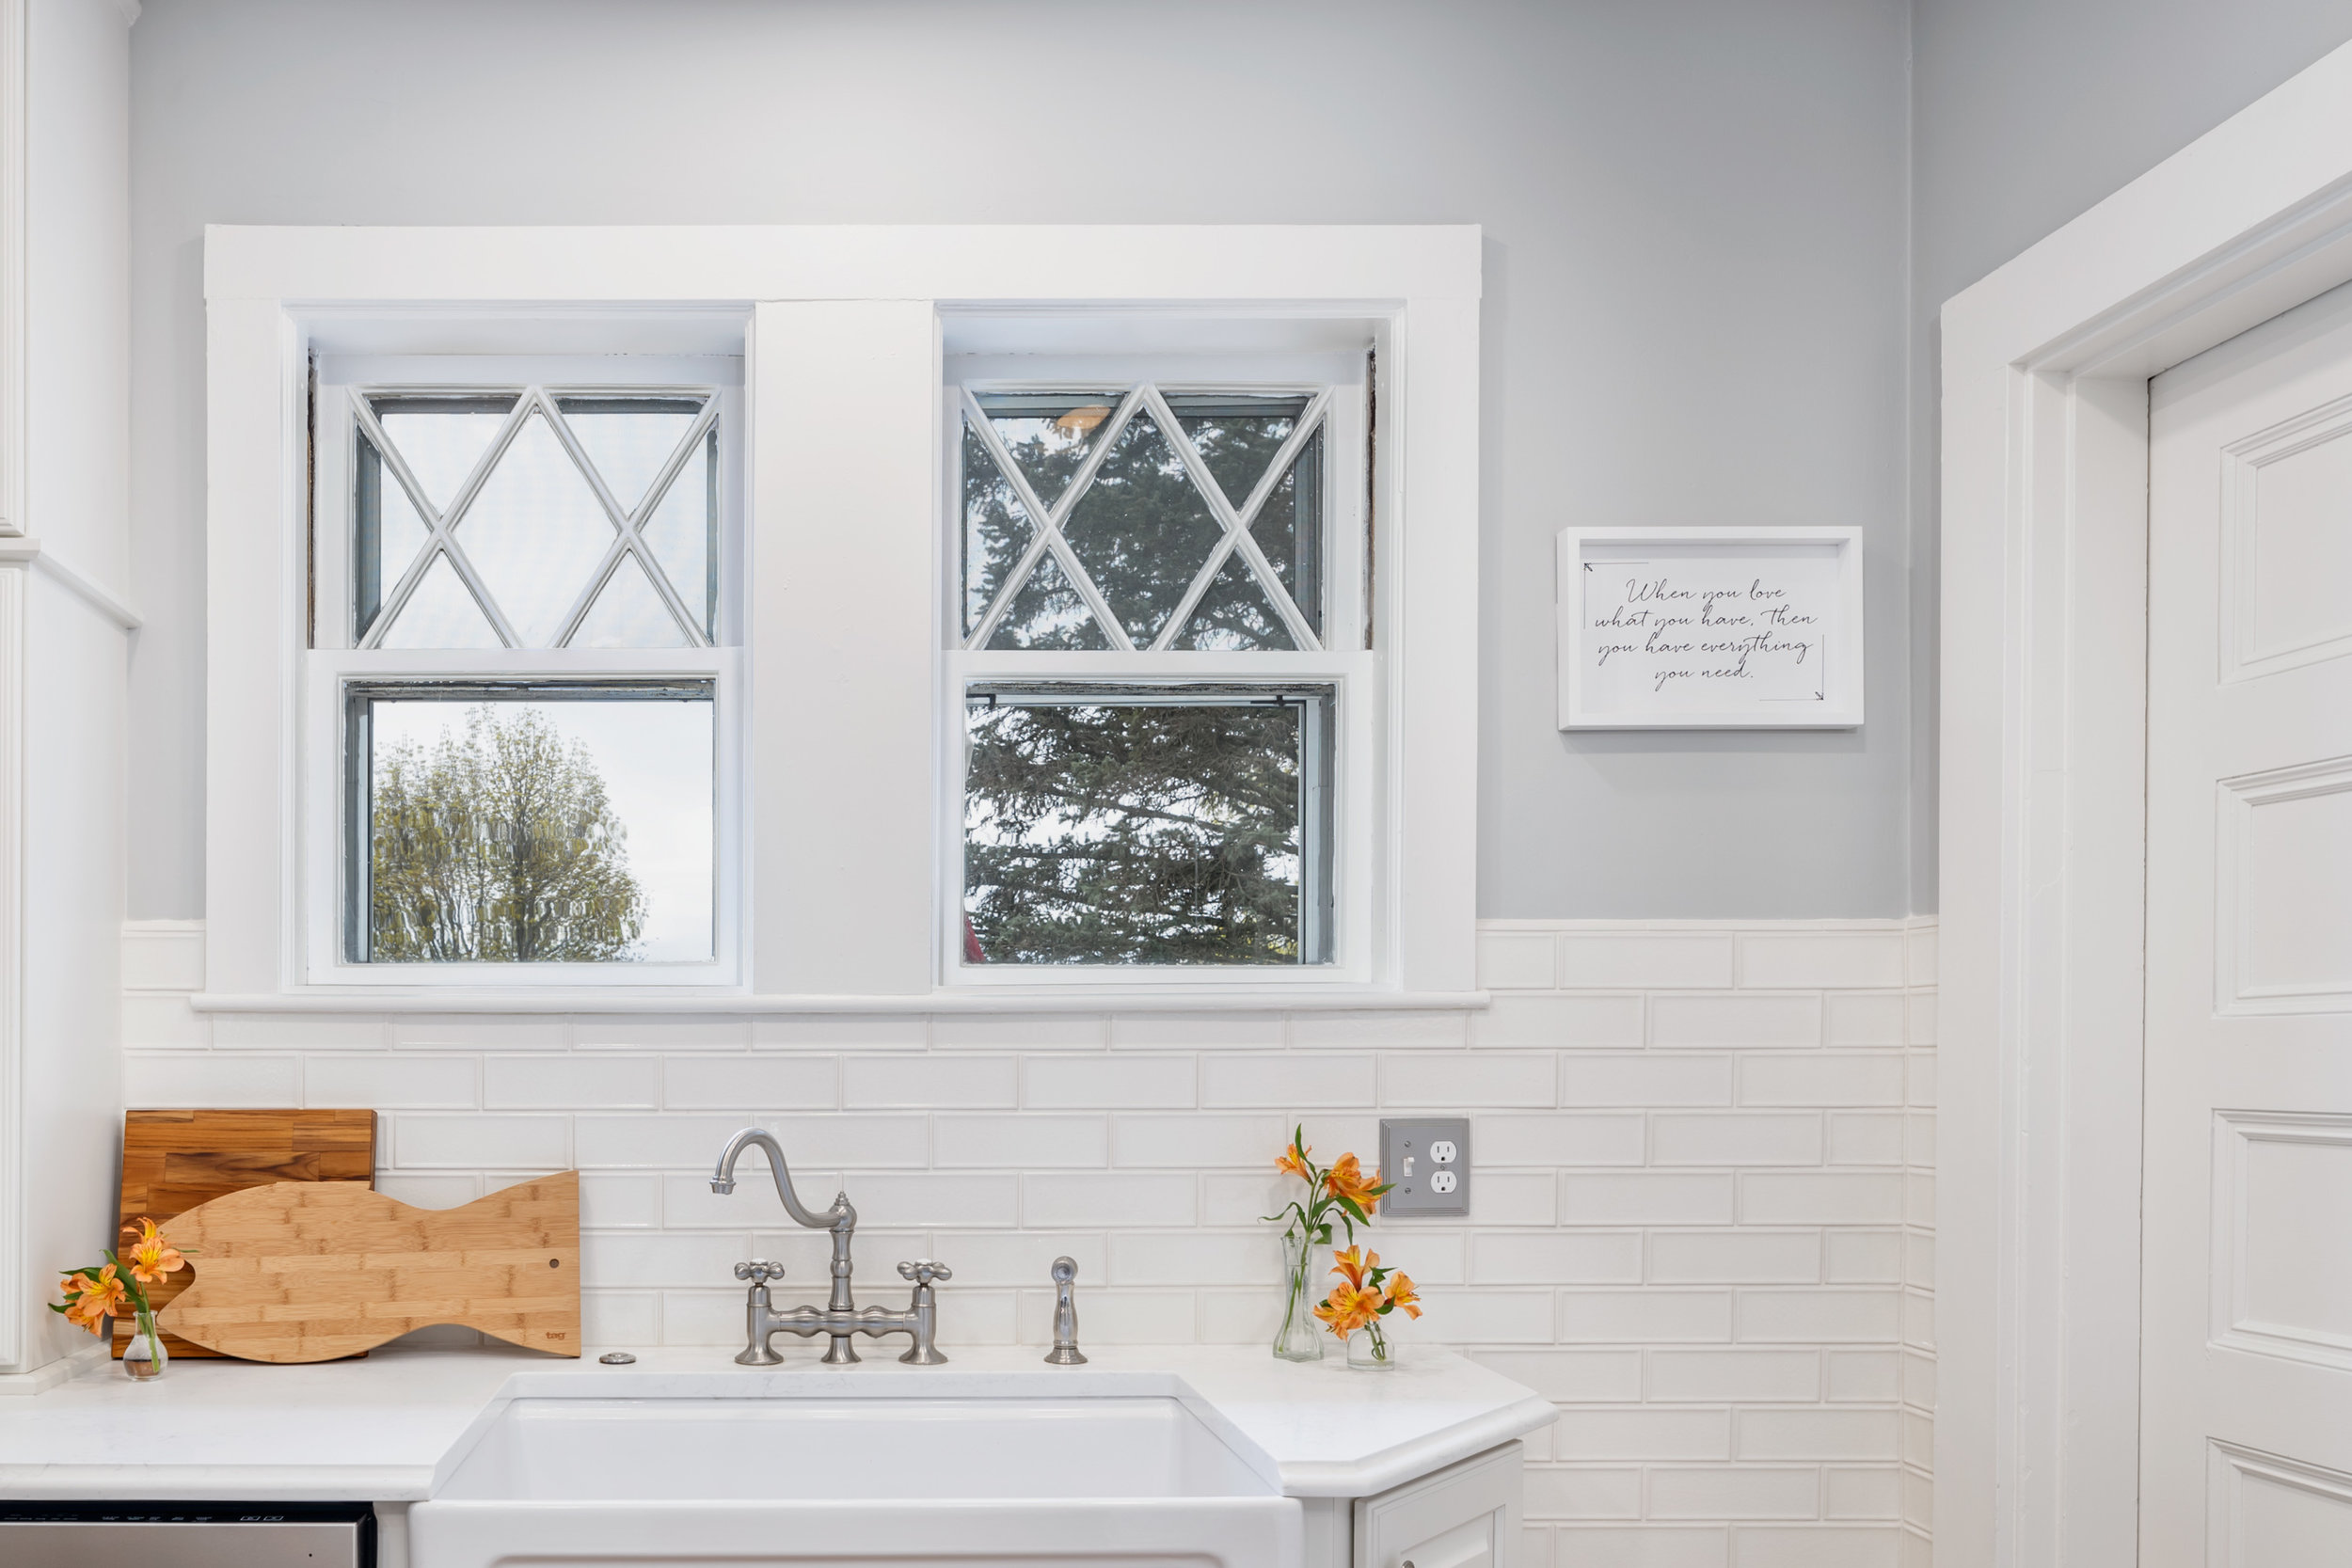 Sink and window - Cropped.jpg